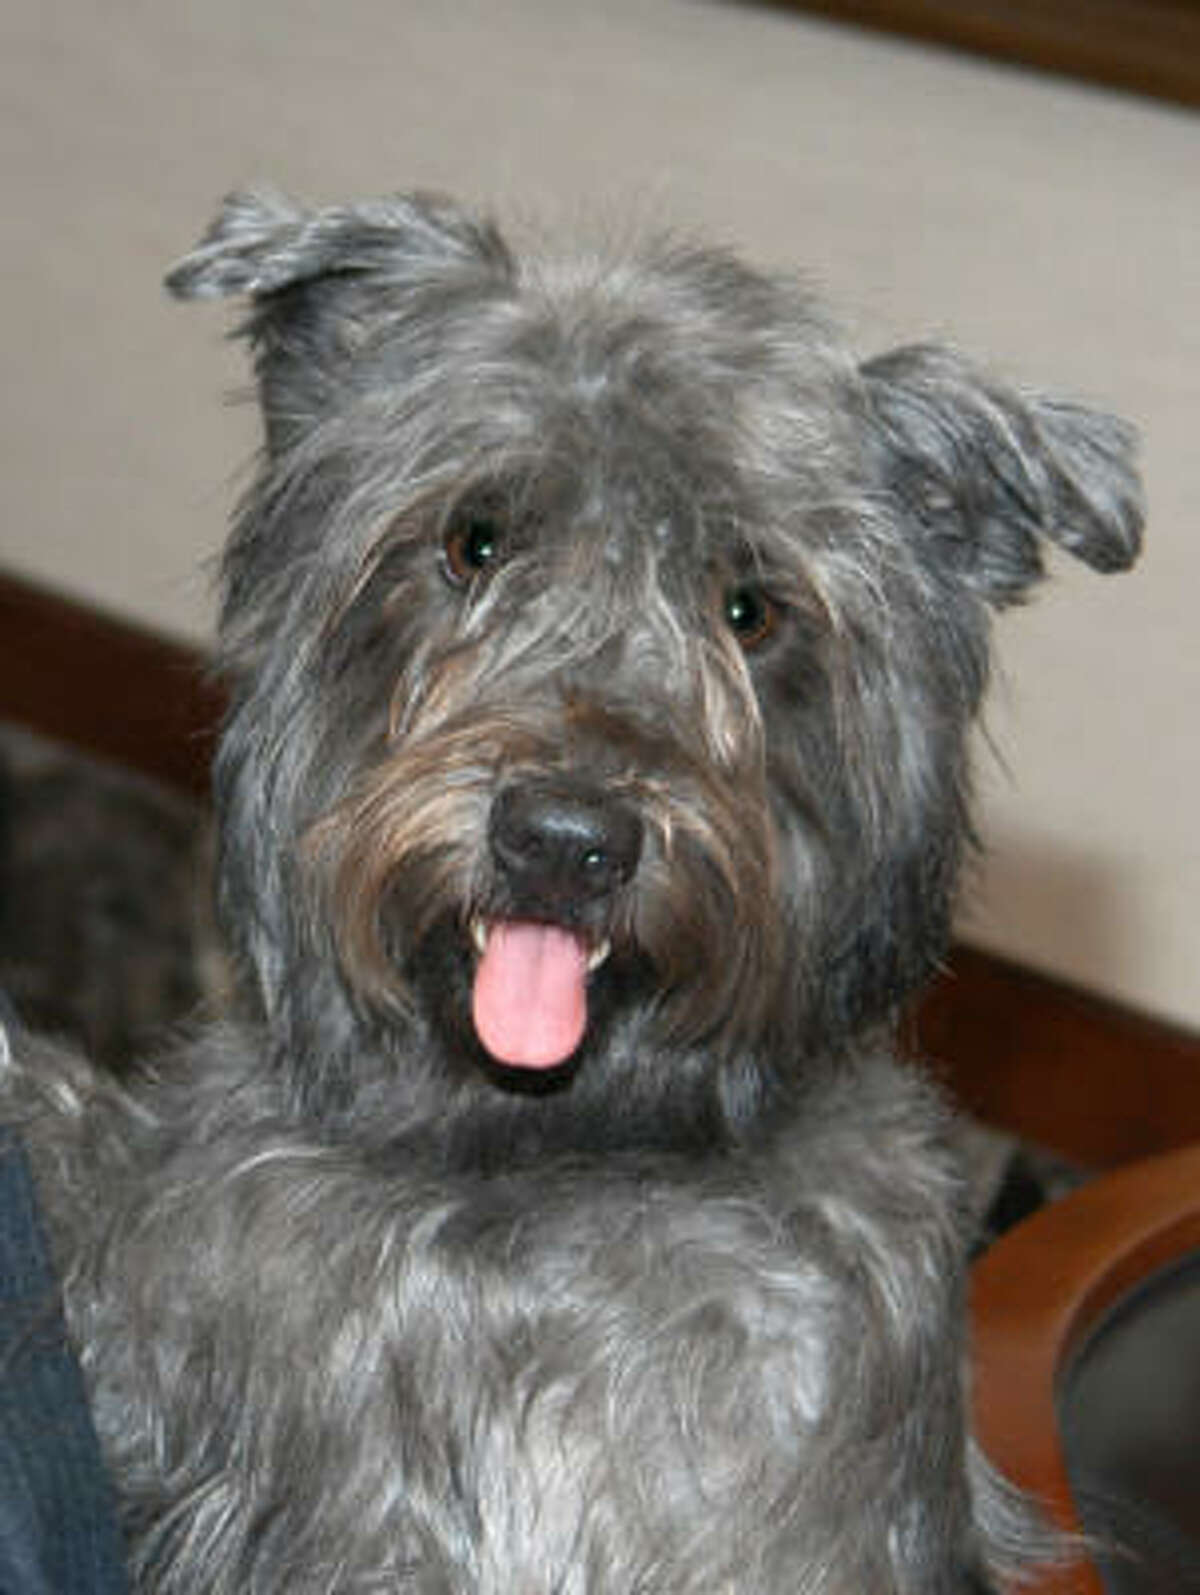 Glen of Imaal terrier: Working terriers with great strength. Courageous and always ready to give chase, they're agile, silent and intent when working. Otherwise docile companions for families with older children.